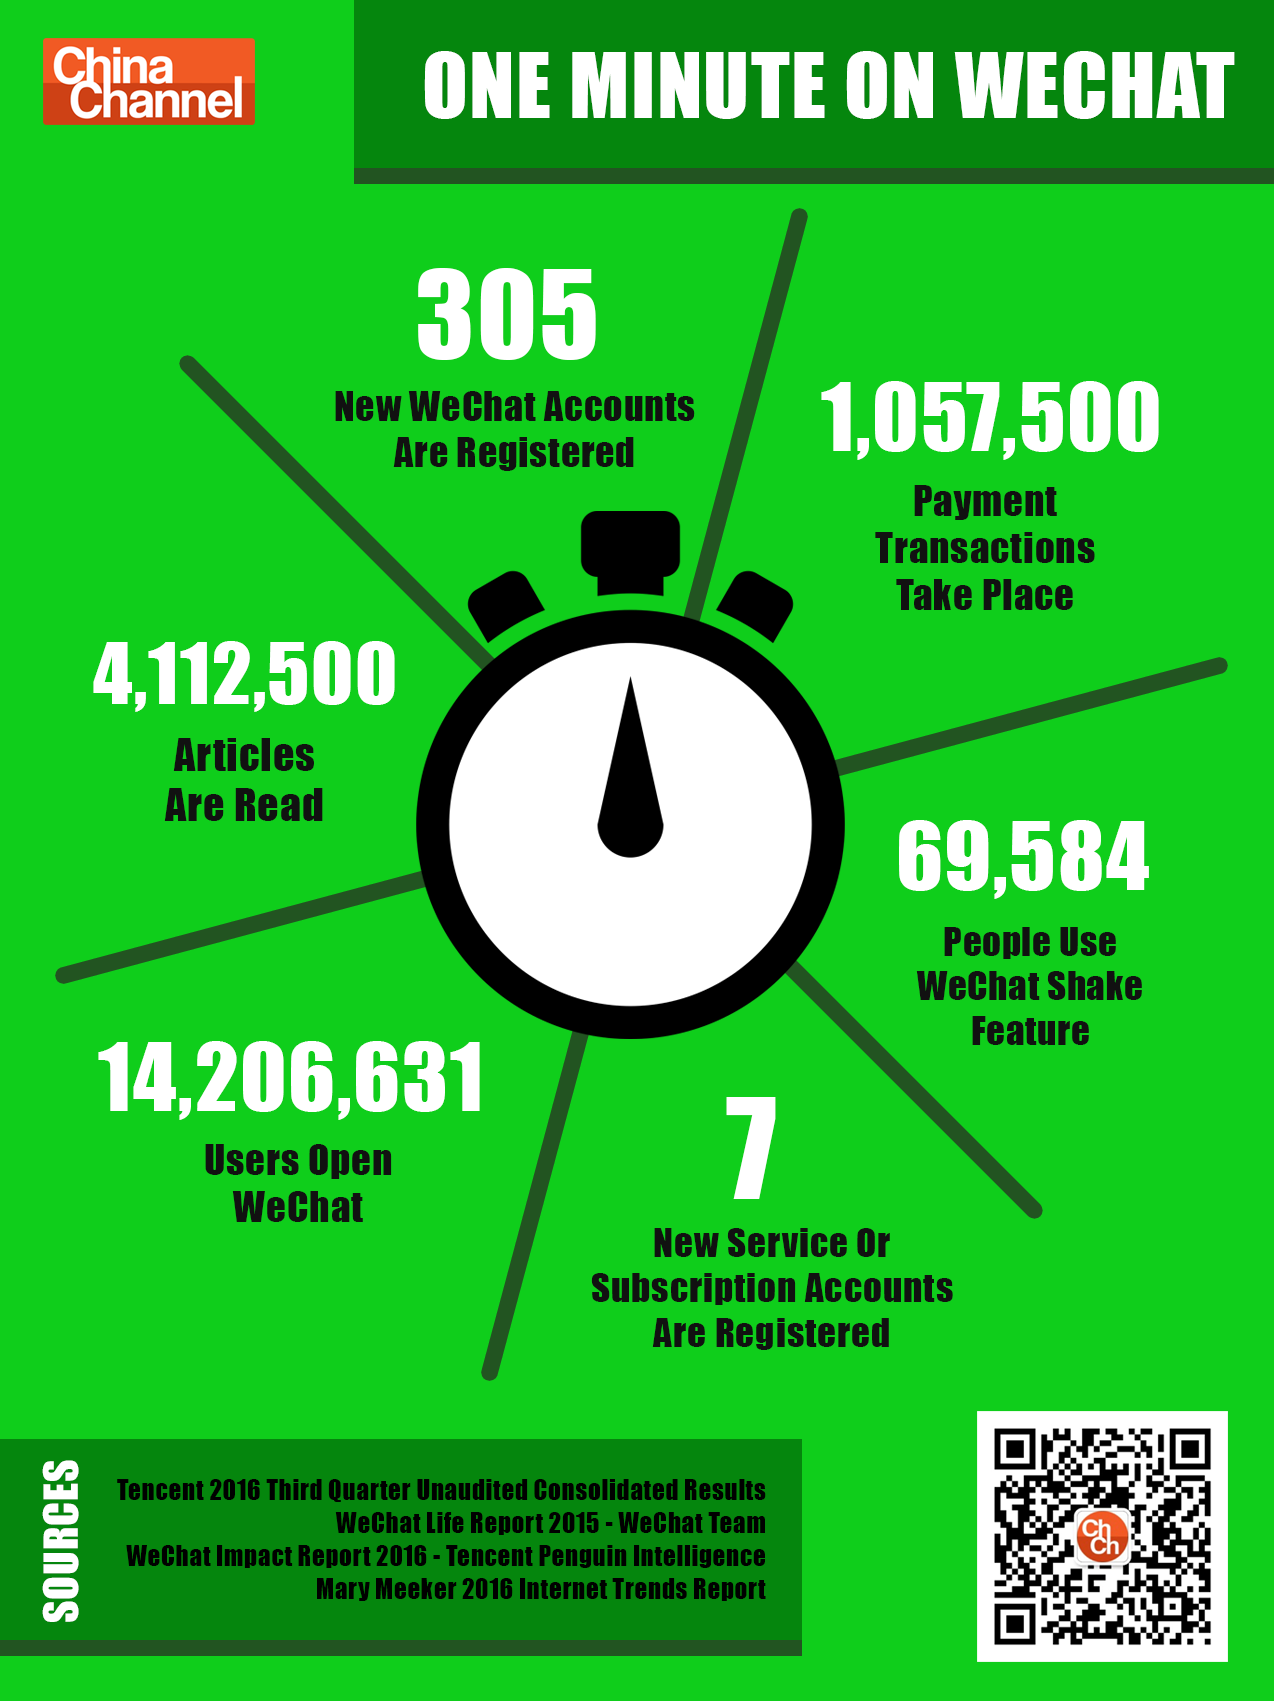 1 minute on wechat infographic china channel what happens in 1 minute on wechat stats reheart Images